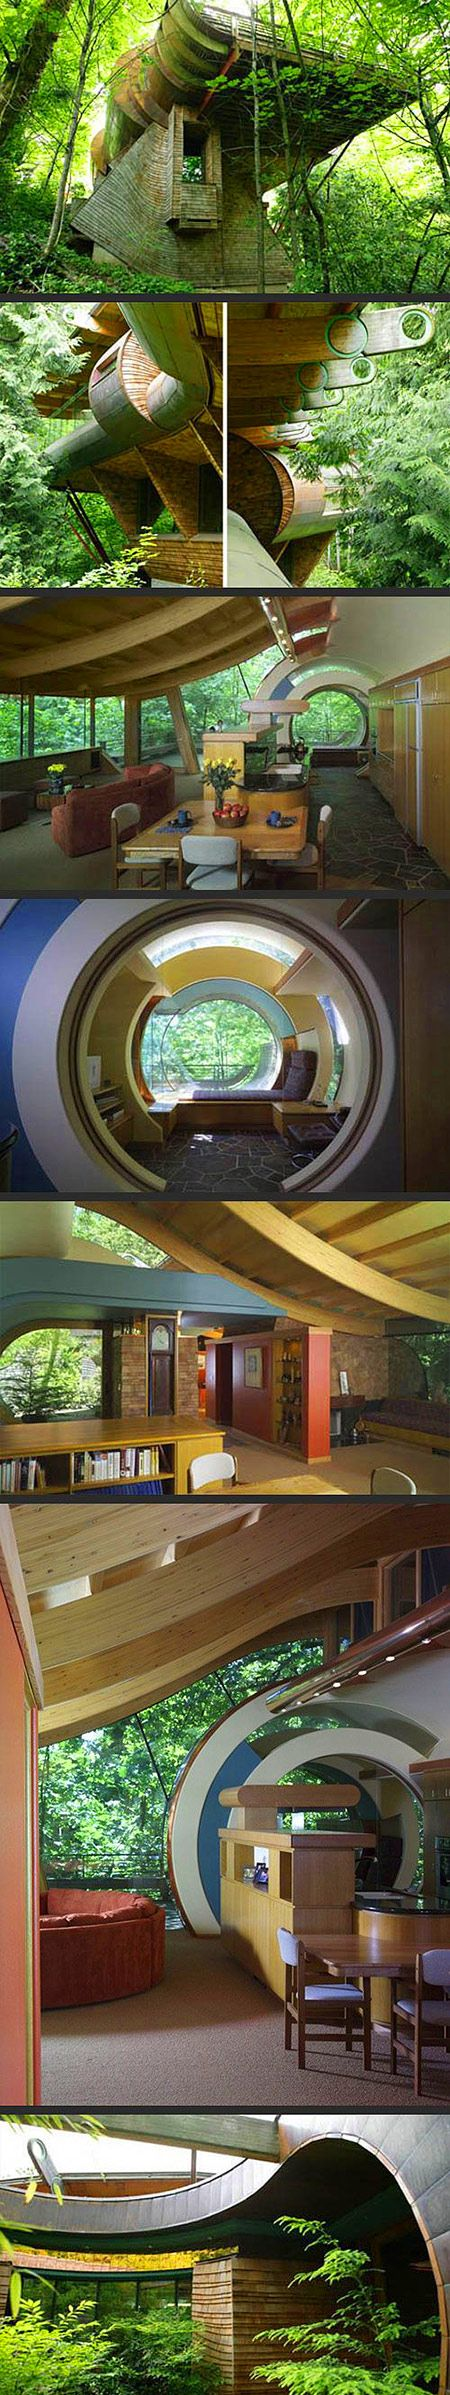 Organic Architect Robert Oshatzu0027s House ( Portland, Oregon ) Could Easily  Live Off The Grid In This Tree House